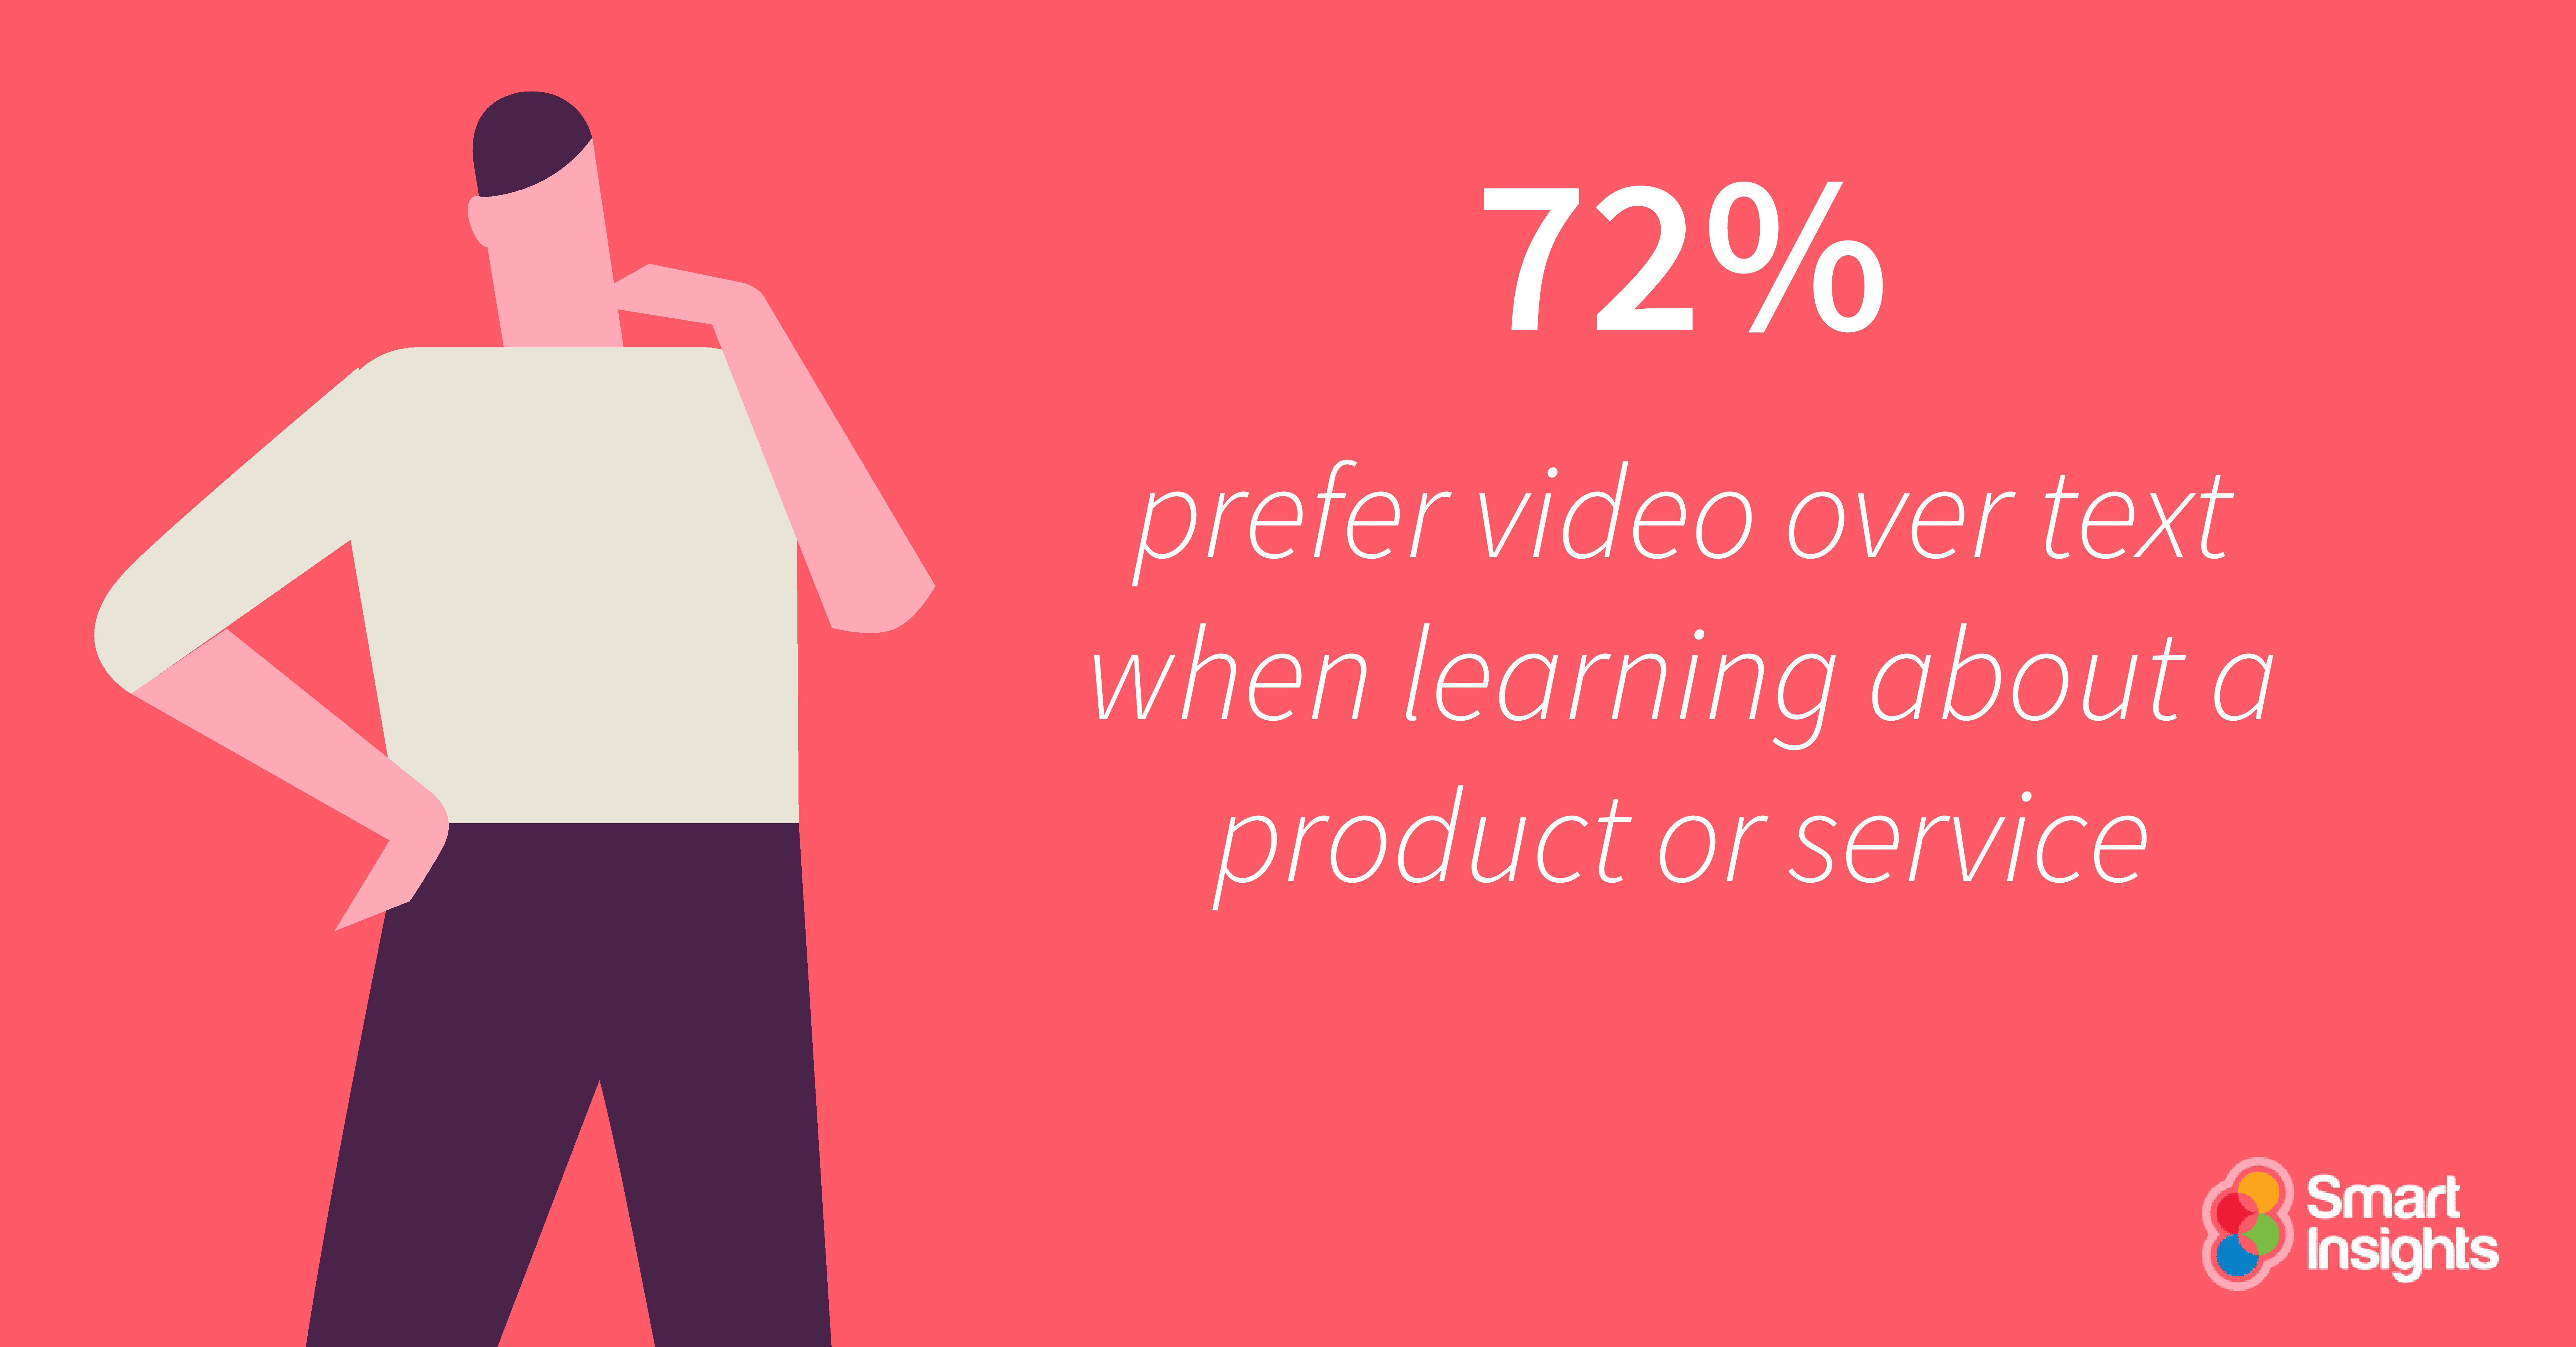 72-prefer-video-over-text-when-learning-about-a-product-or-service